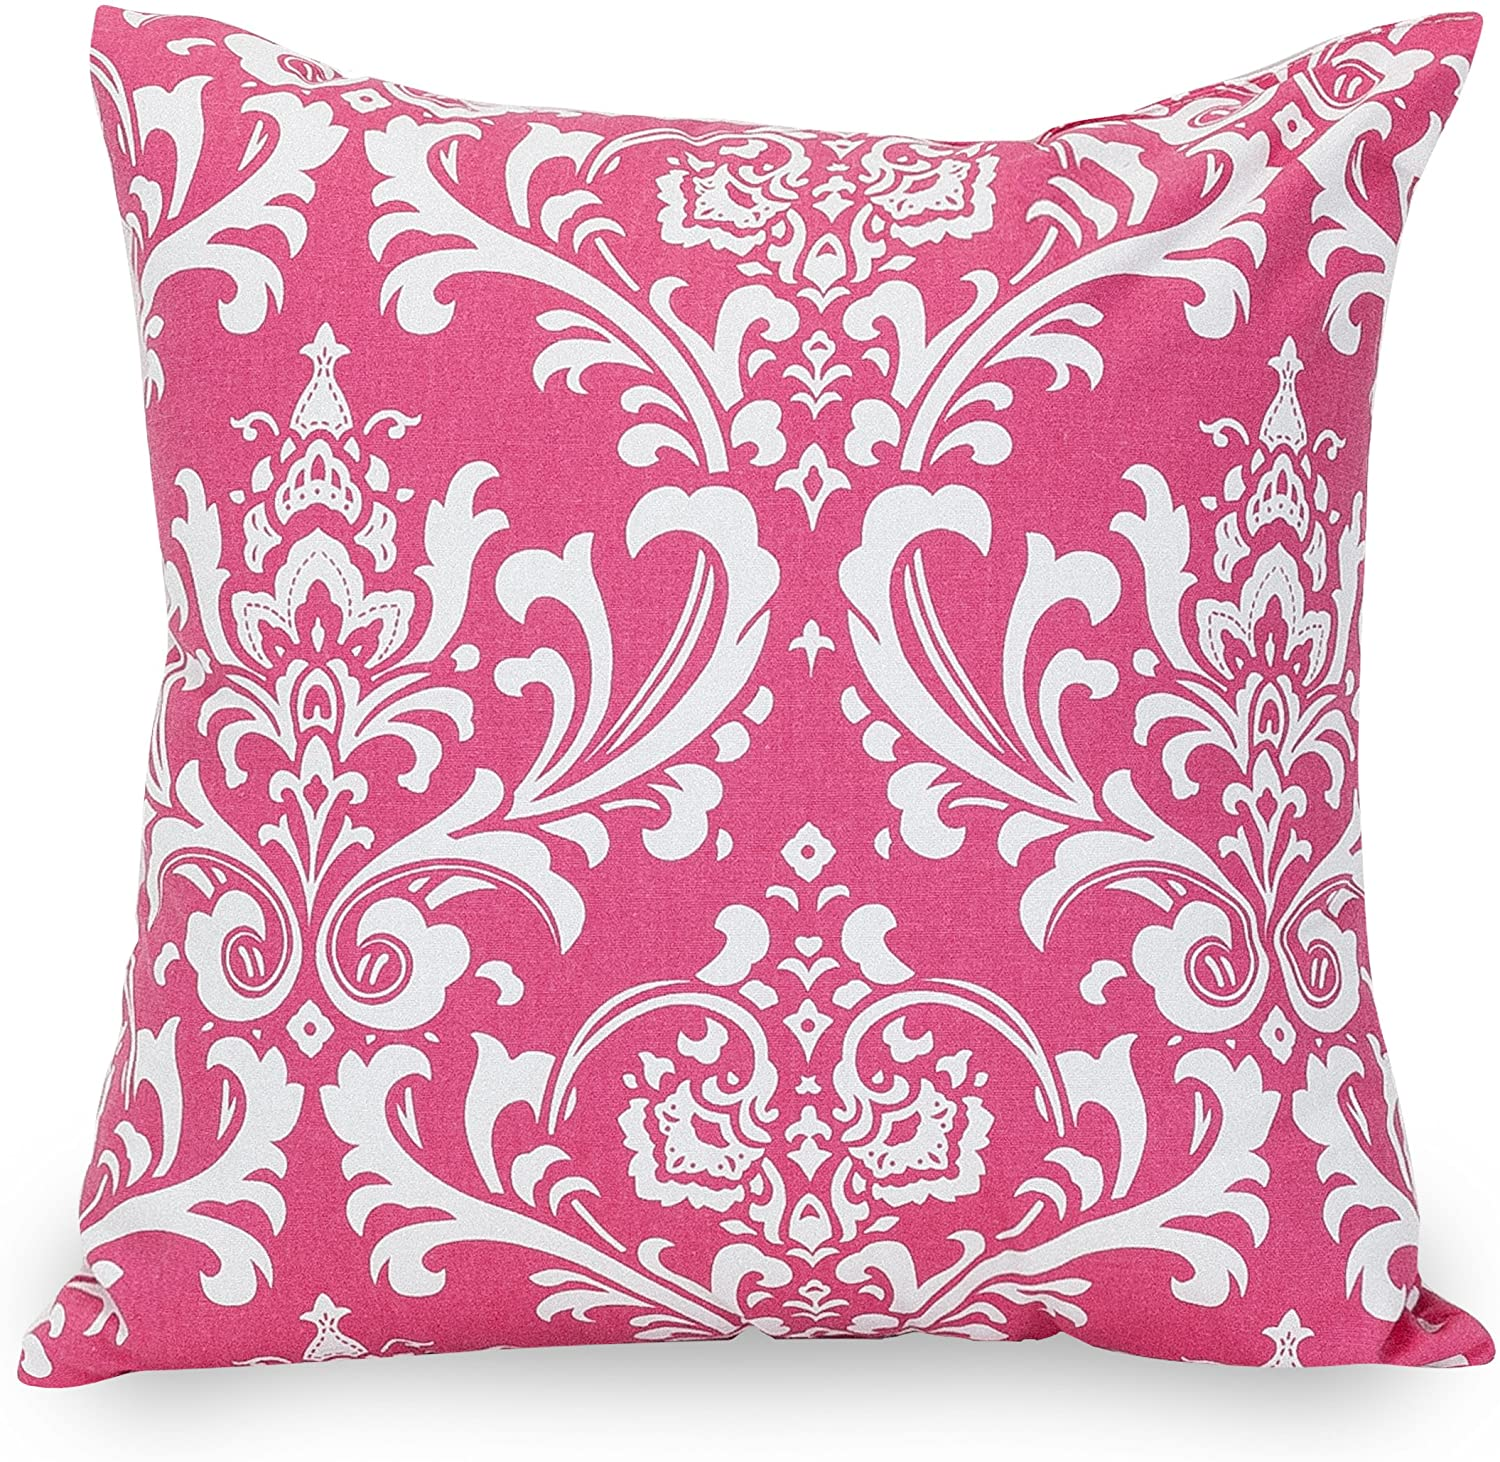 Majestic Home Goods Hot Pink French Quarter Indoor Large Pillow 20